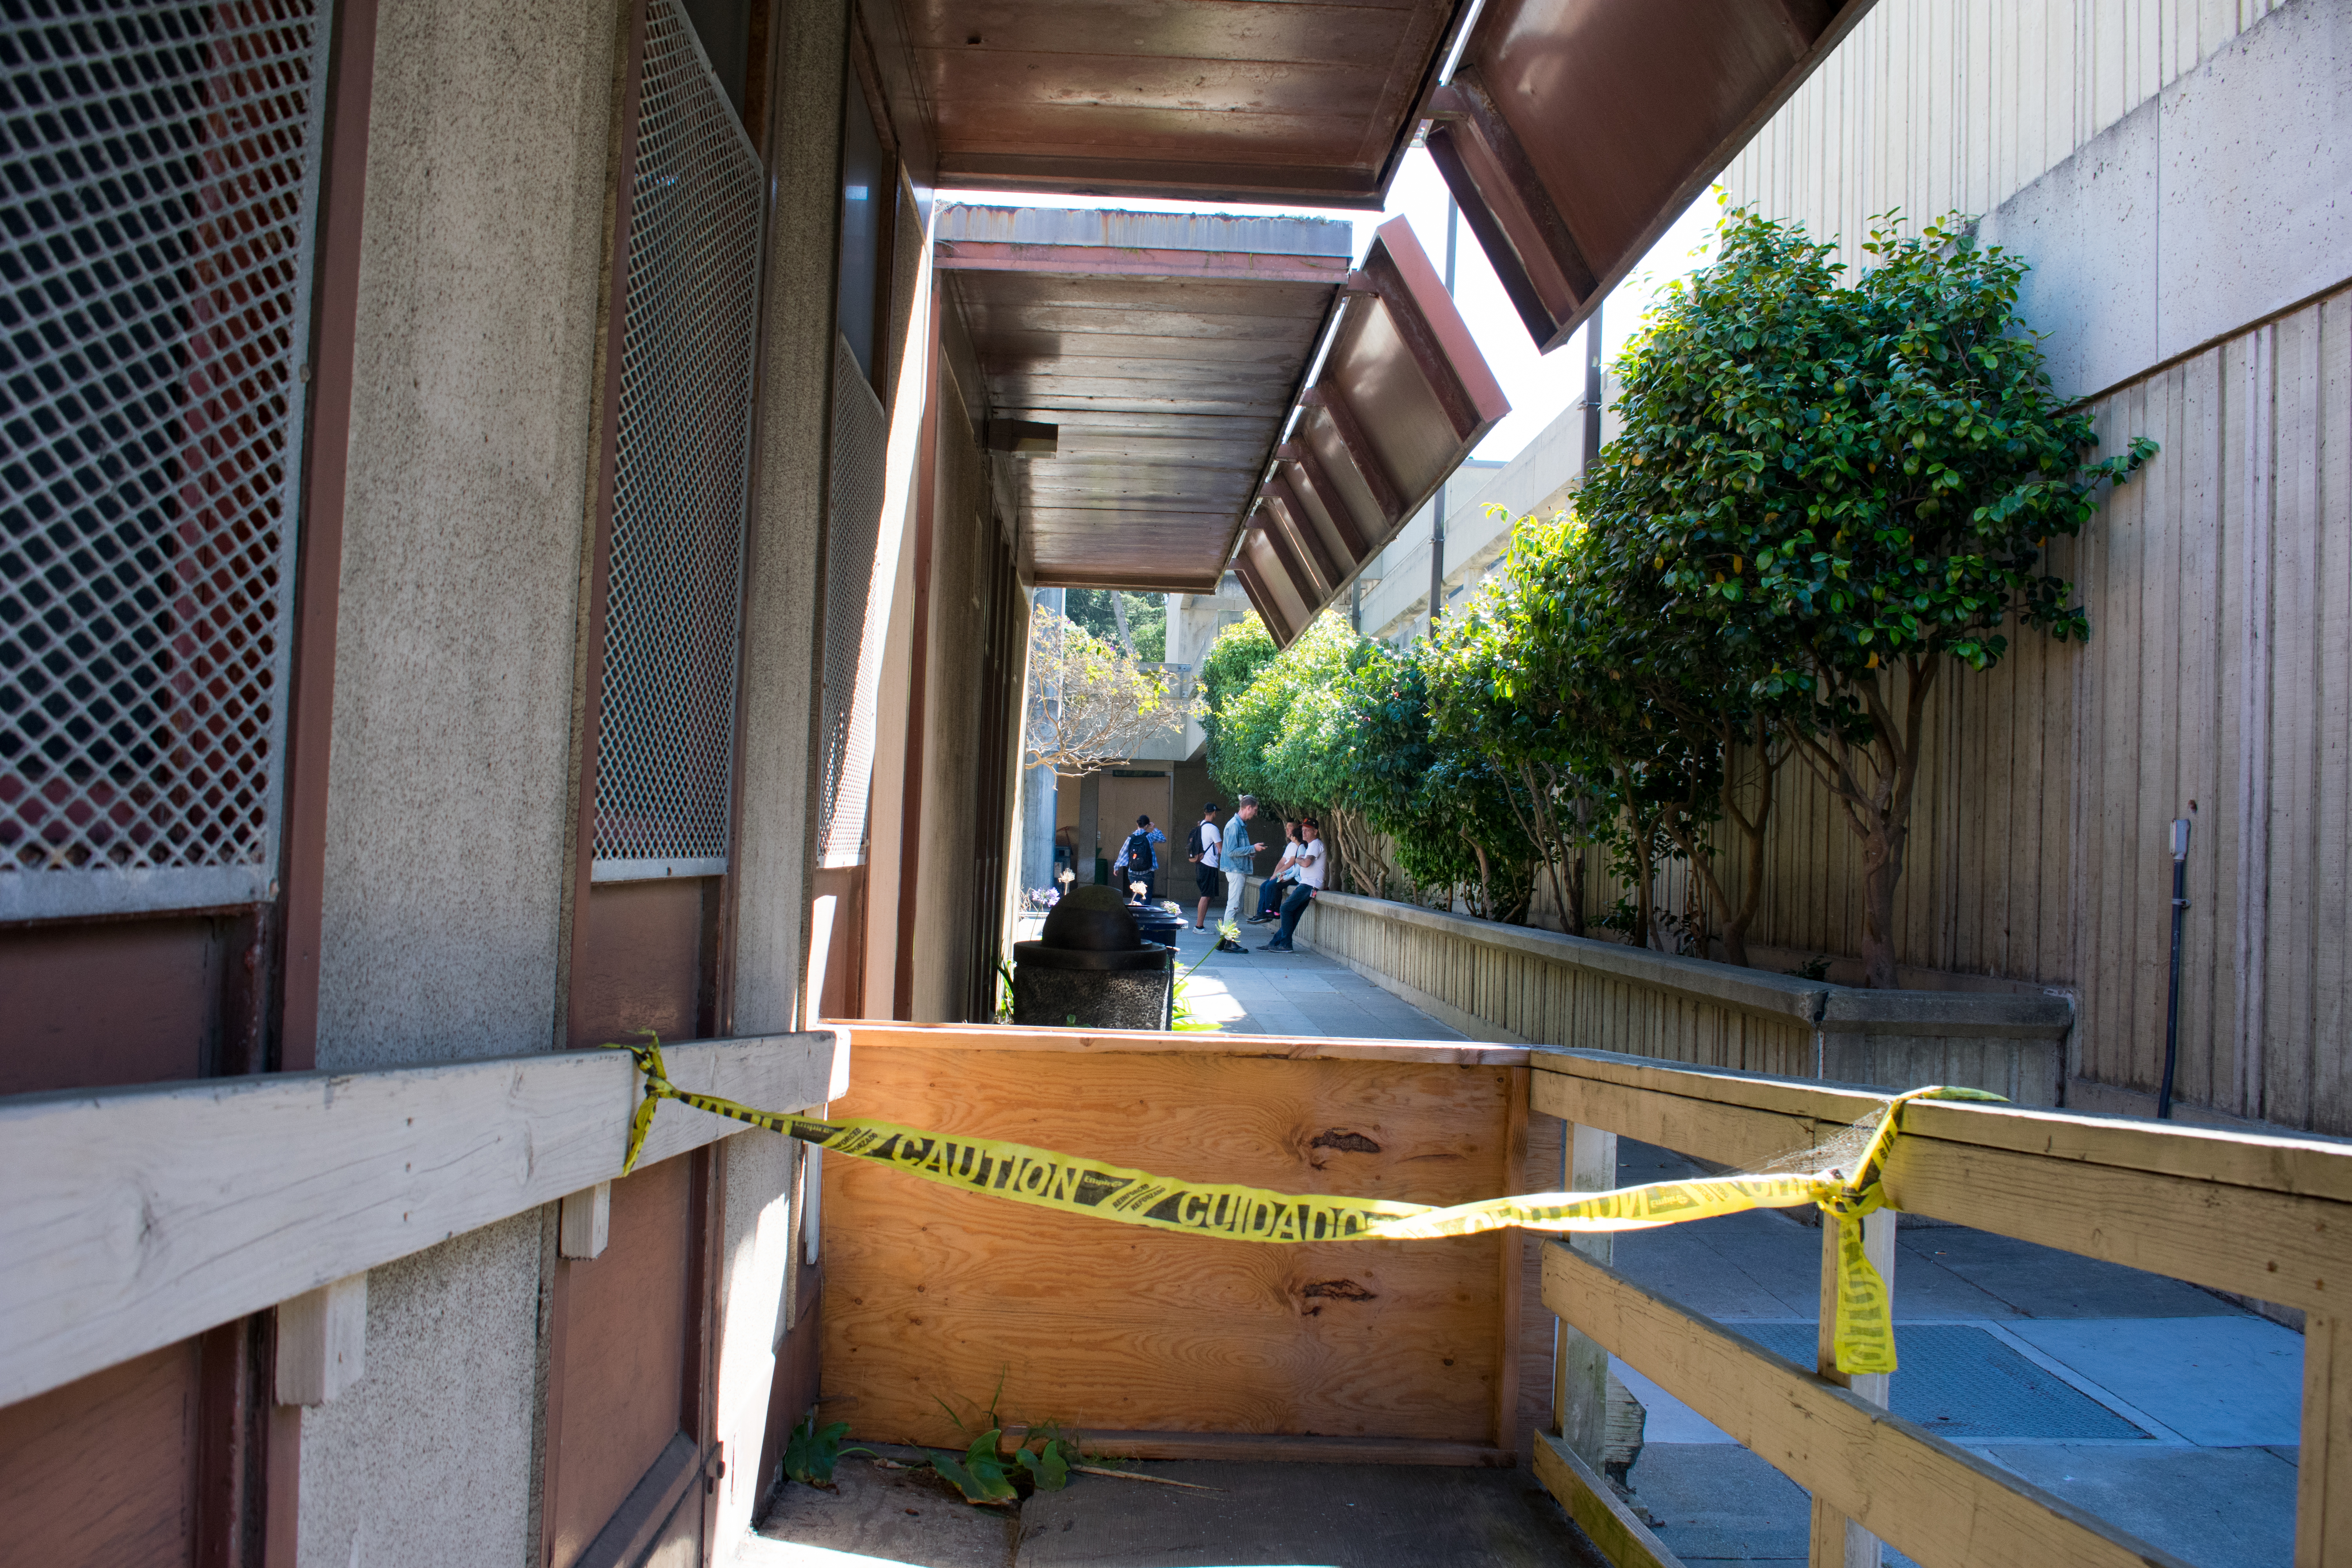 Taped up bungalows are seen scattered around the Arts building. October 7, 2017. Many of the buildings, including the Queer Resource Center have had mold and rodent infestations, San Francisco. (AP Photo / Julia Fuller)